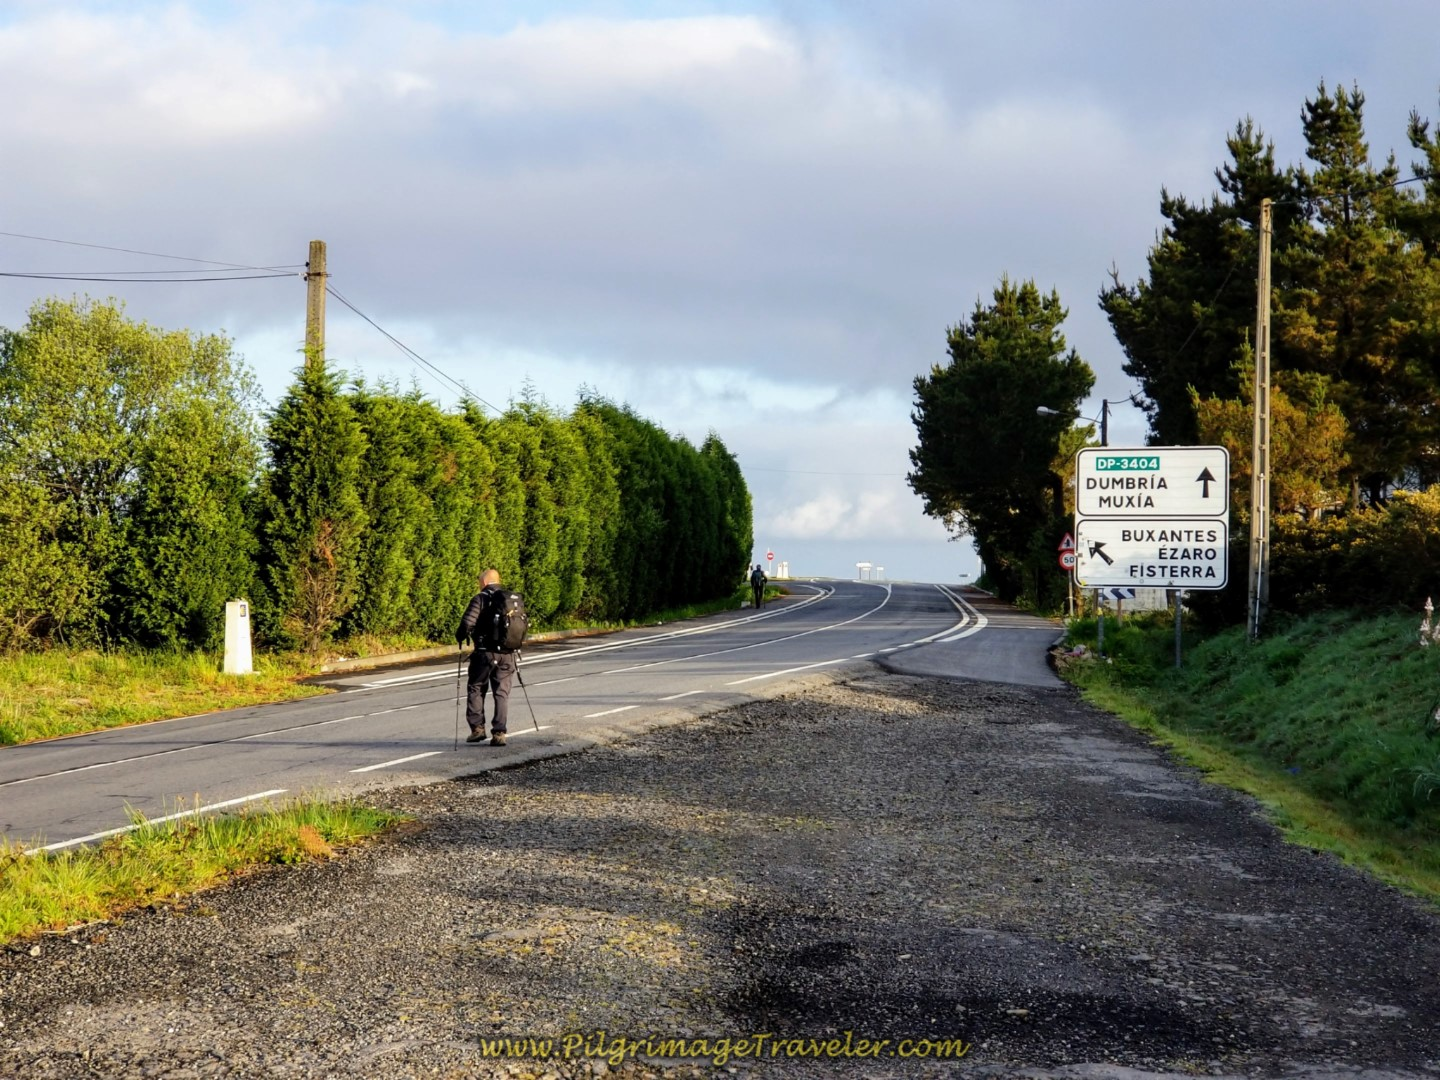 Back on the DP-3404 ~ Camino Bifurcation Just Ahead